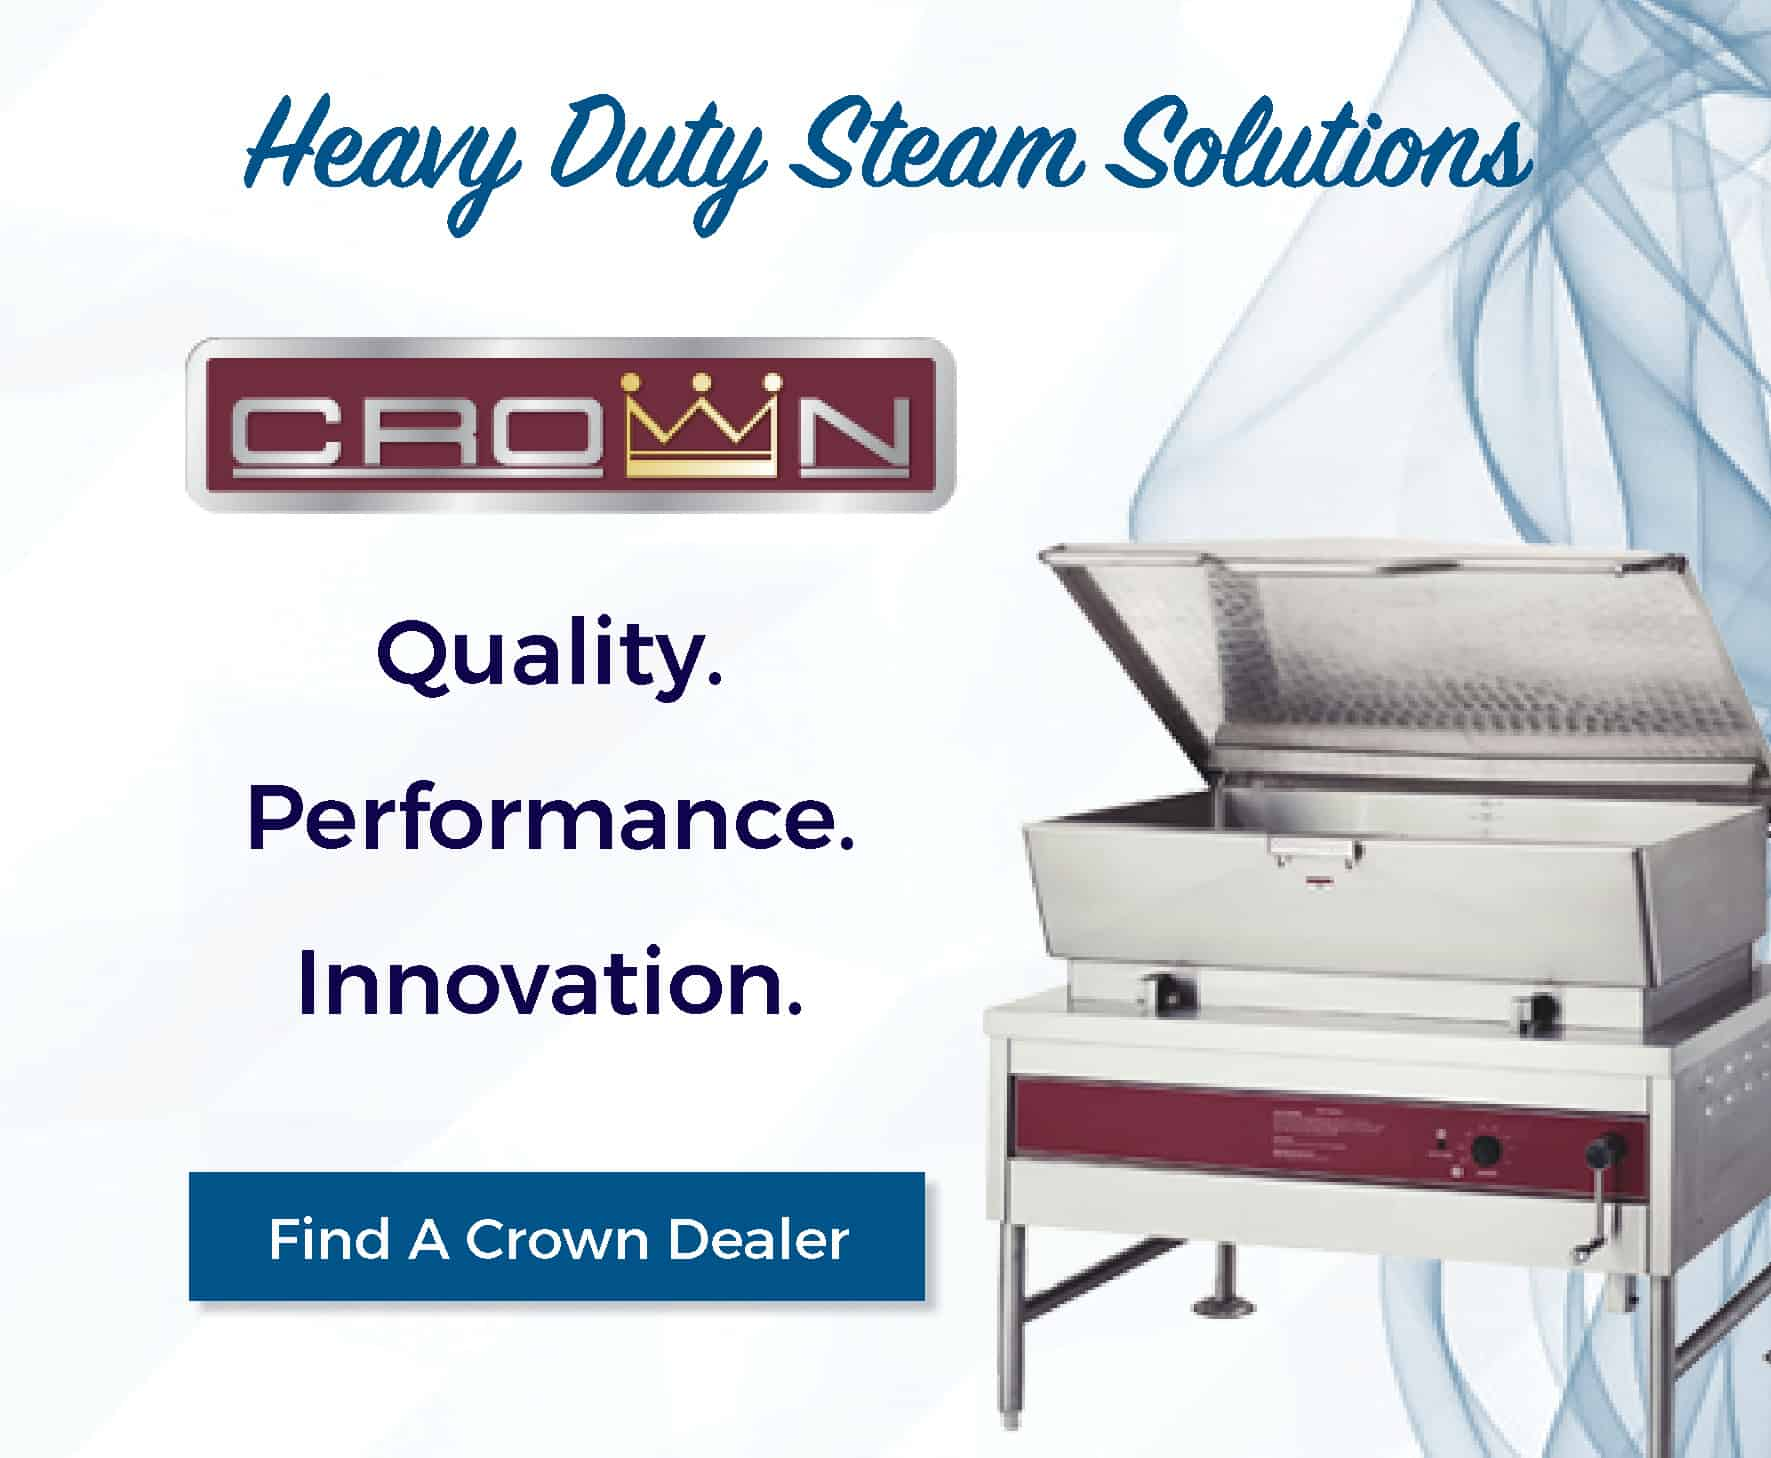 Crown Steam Solutions